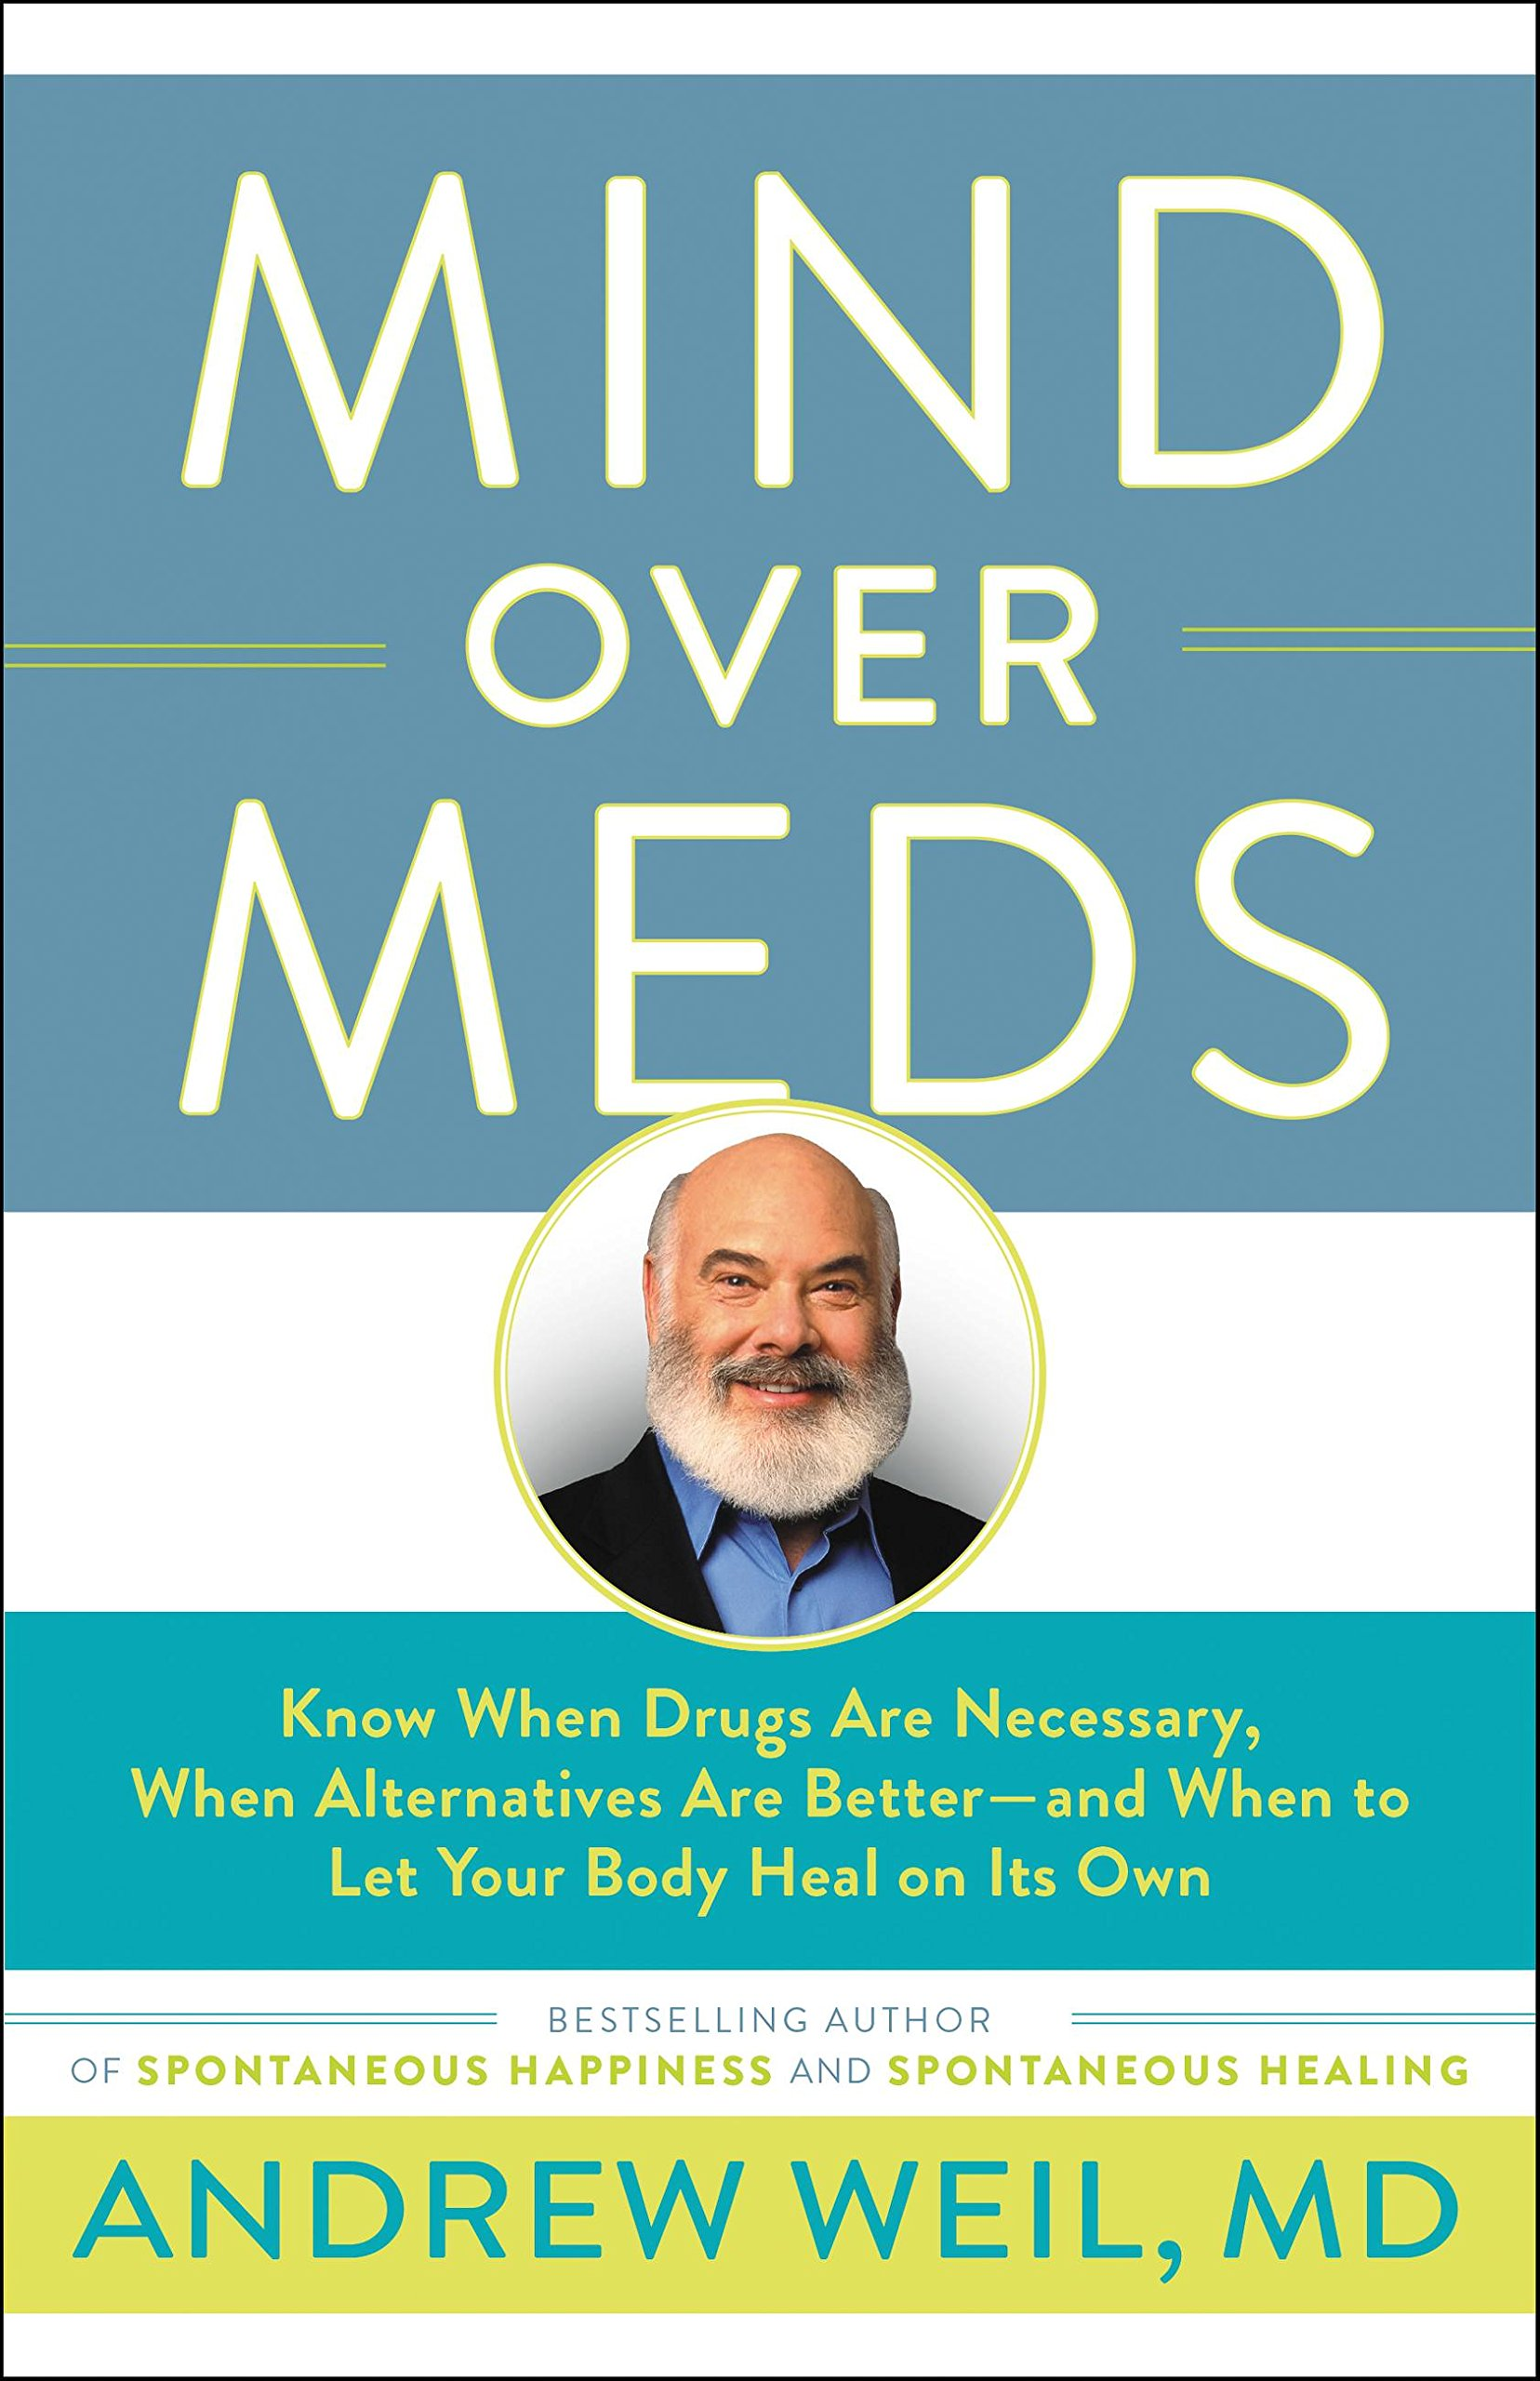 Download Mind Over Meds: Know When Drugs Are Necessary, When Alternatives Are Better—and When to Let Your Body Heal on Its Own PDF